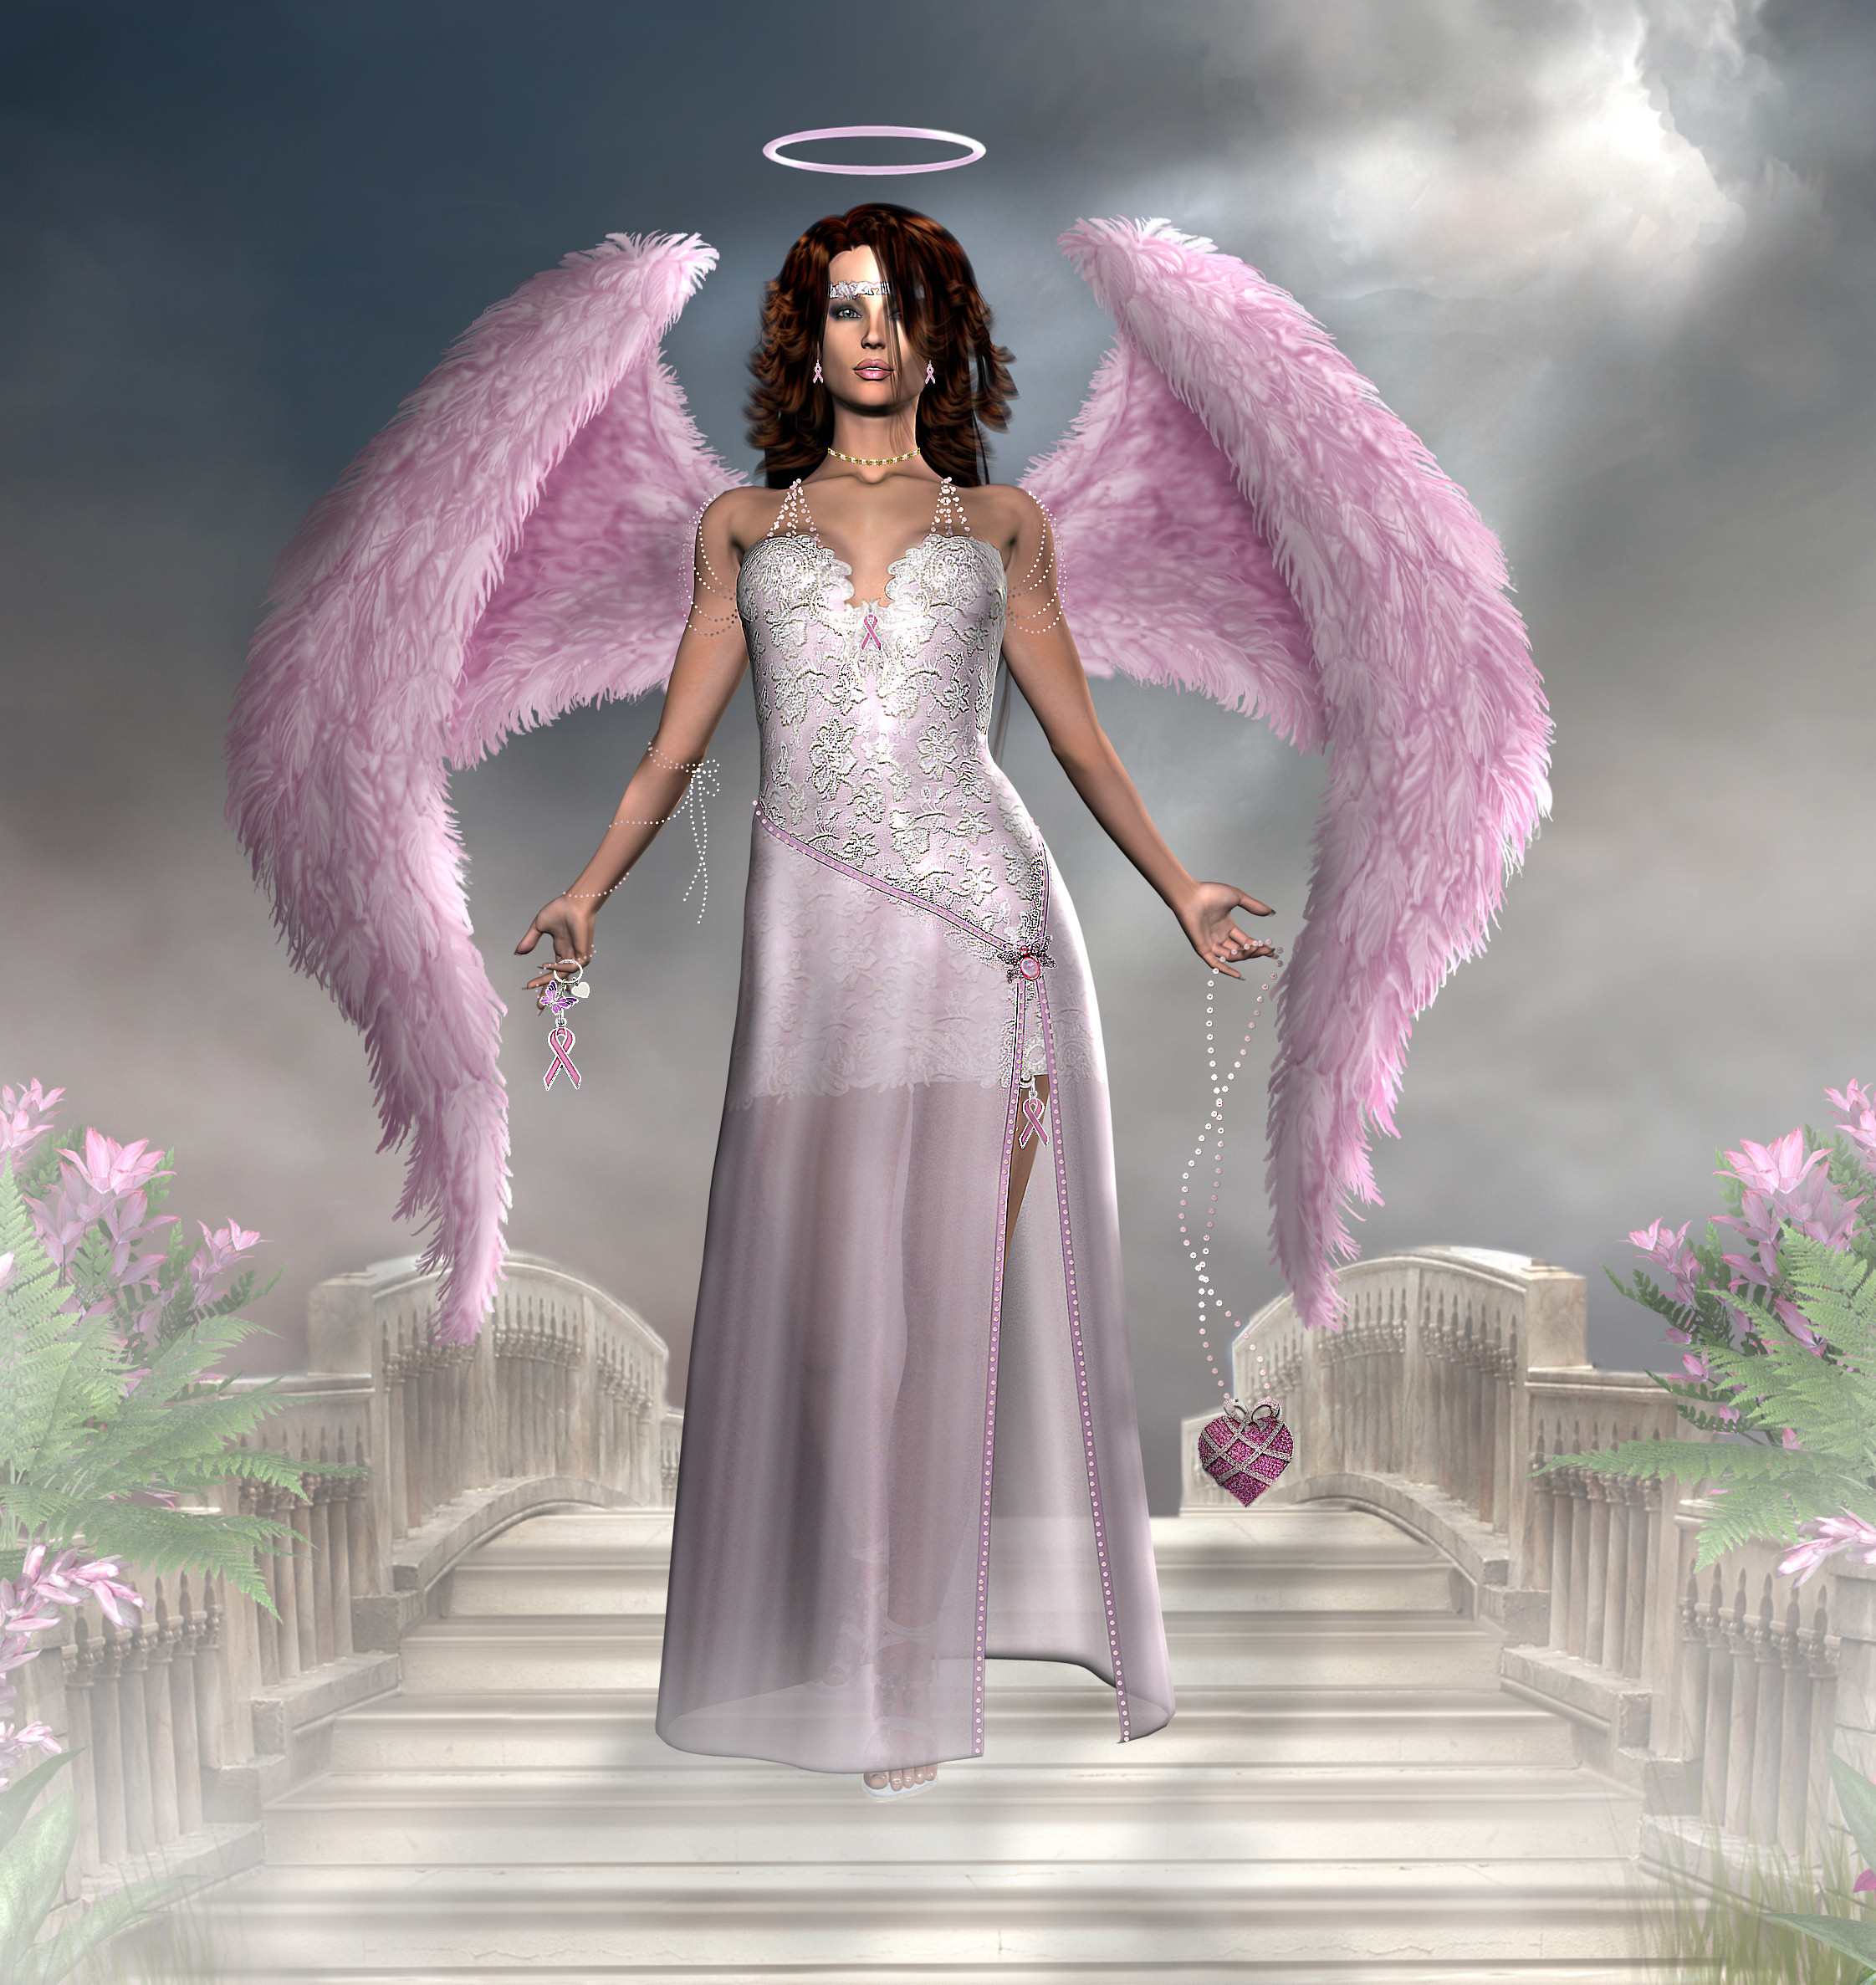 god and angel pictures Angel is one of the popular tattoo ideas for showing the love of god and faith angels tattoos look beautiful once they have done on your skin angels are known as the messenger of god between heaven and earth.